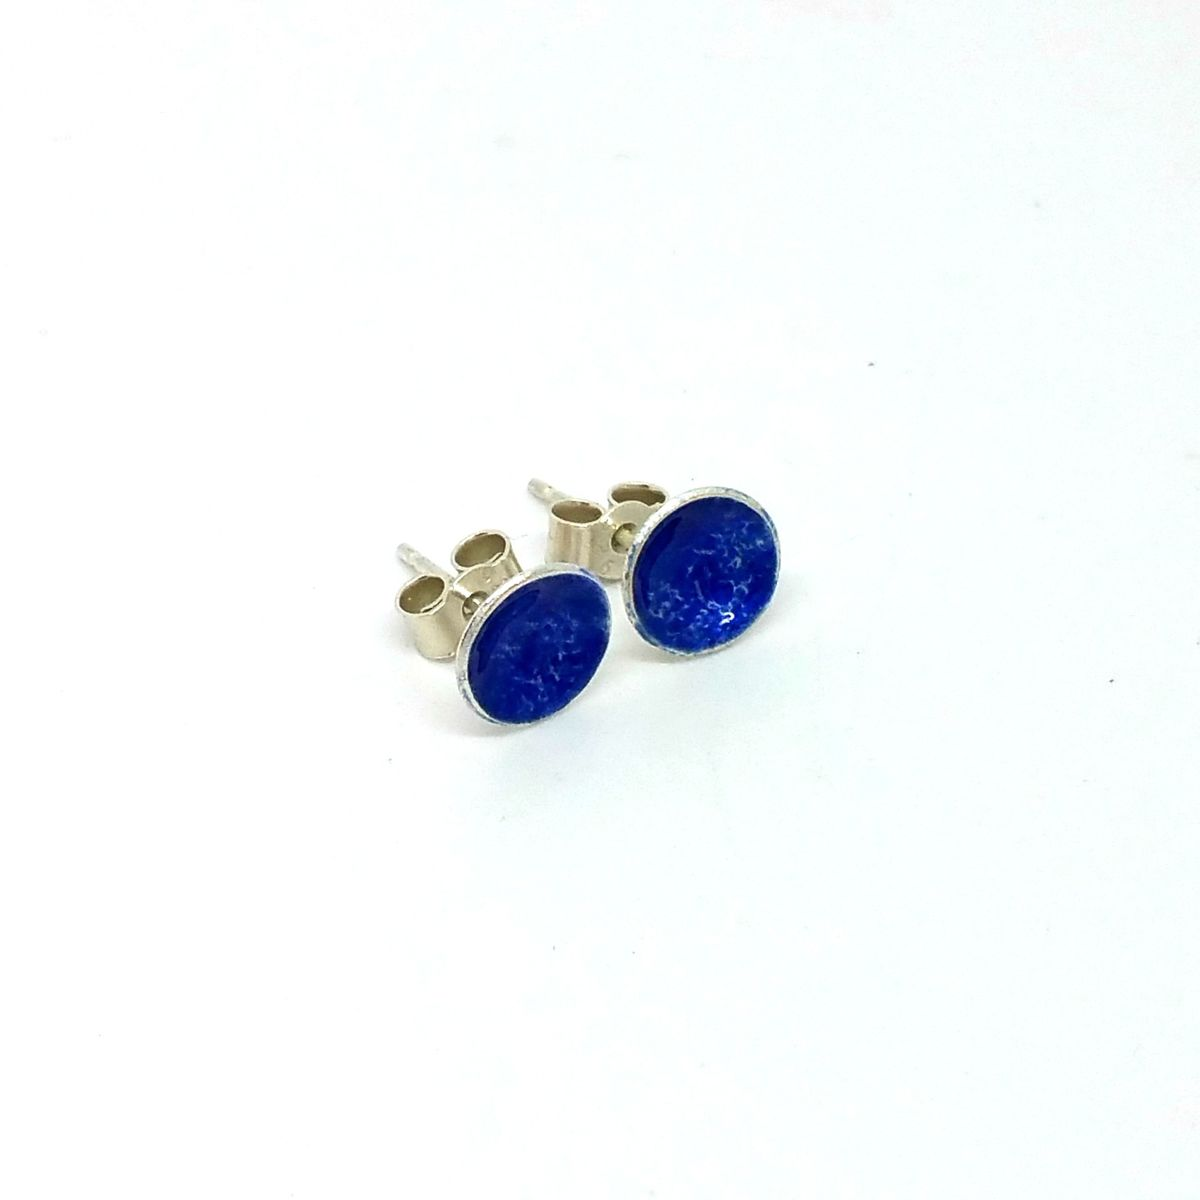 Blue Round Enamel Stud Earrings - product images  of